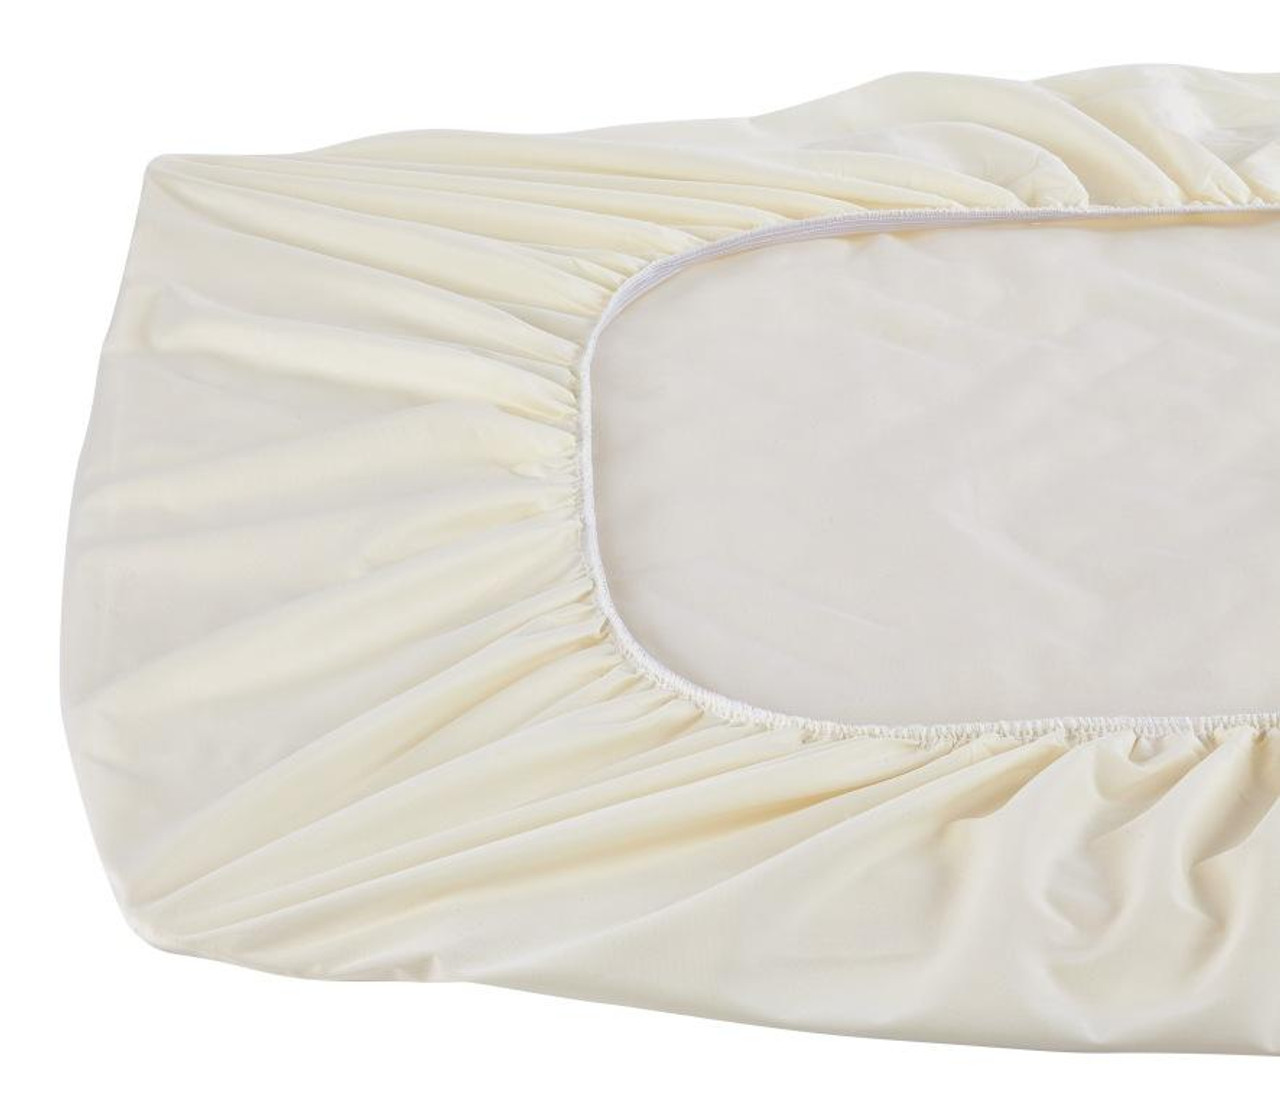 Sleep & Beyond myProtector™, 2-in-1 ultimate, washable, natural mattress protector detailed bottom